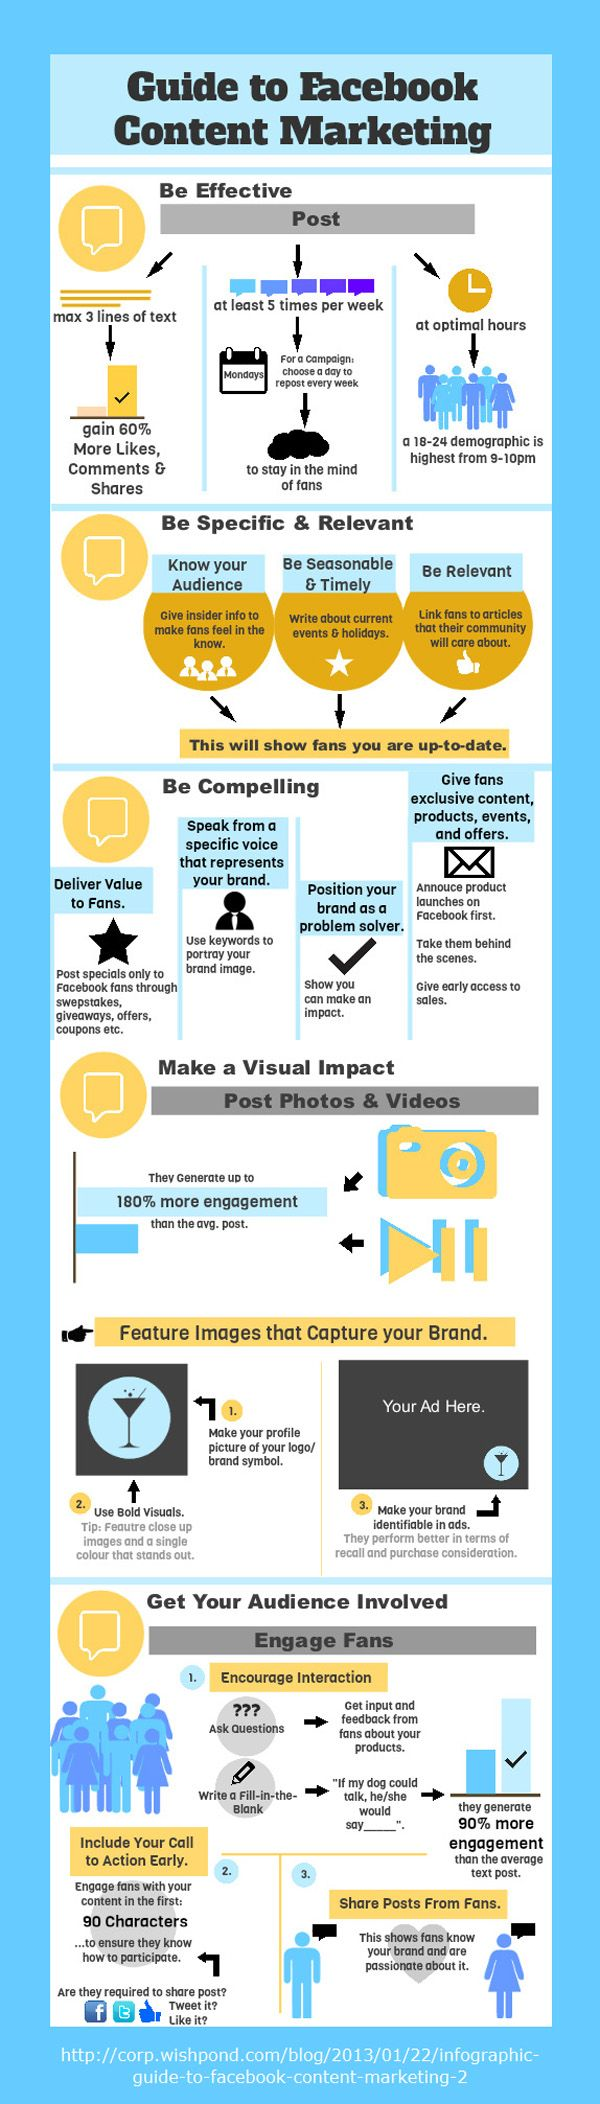 Guide to Facebook Content Marketing-How to Increase Fan Engagement and Visibility of Your Facebook Page